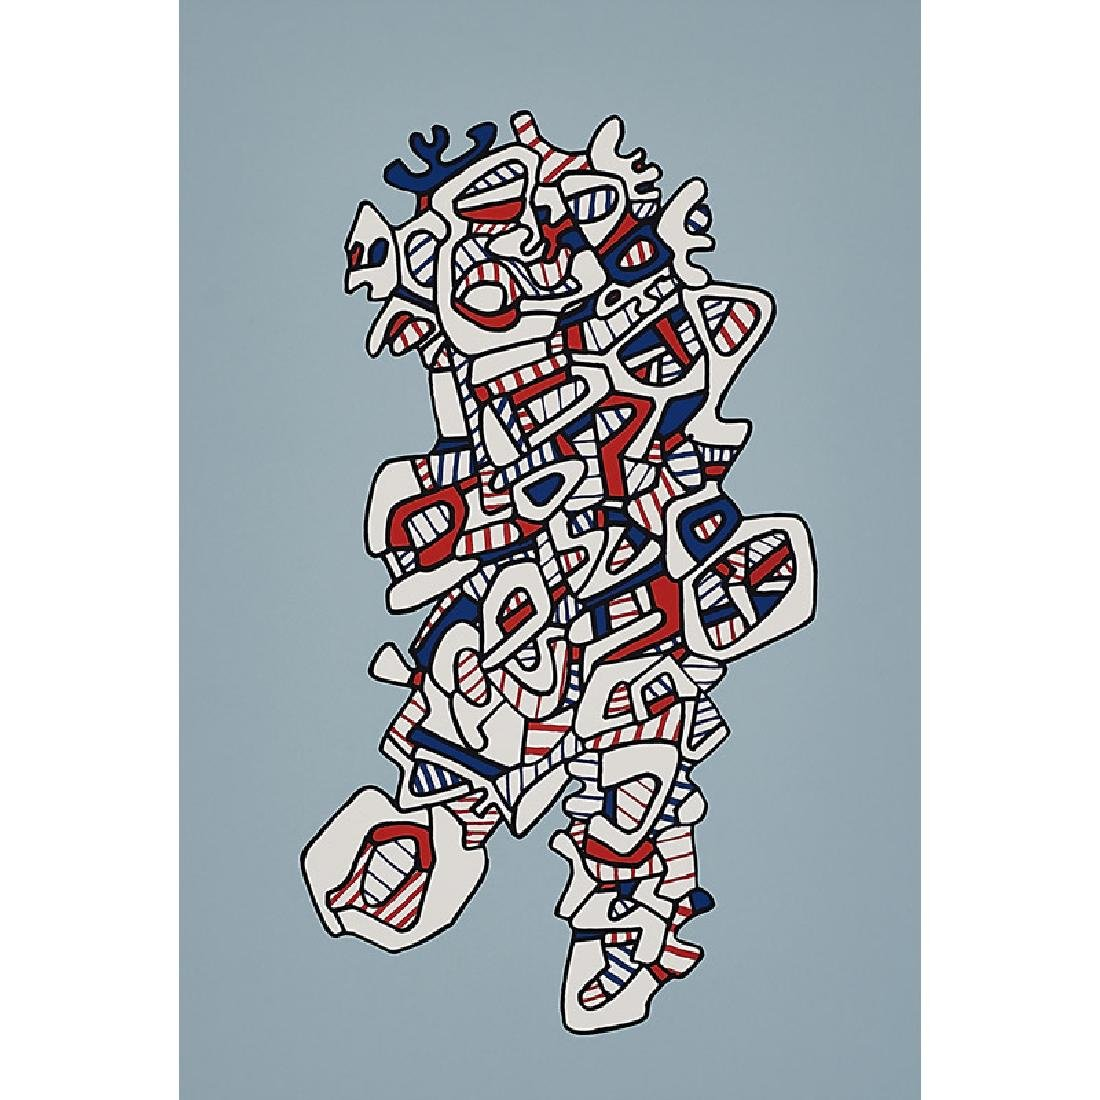 Jean Dubuffet (French, 1901-1985)